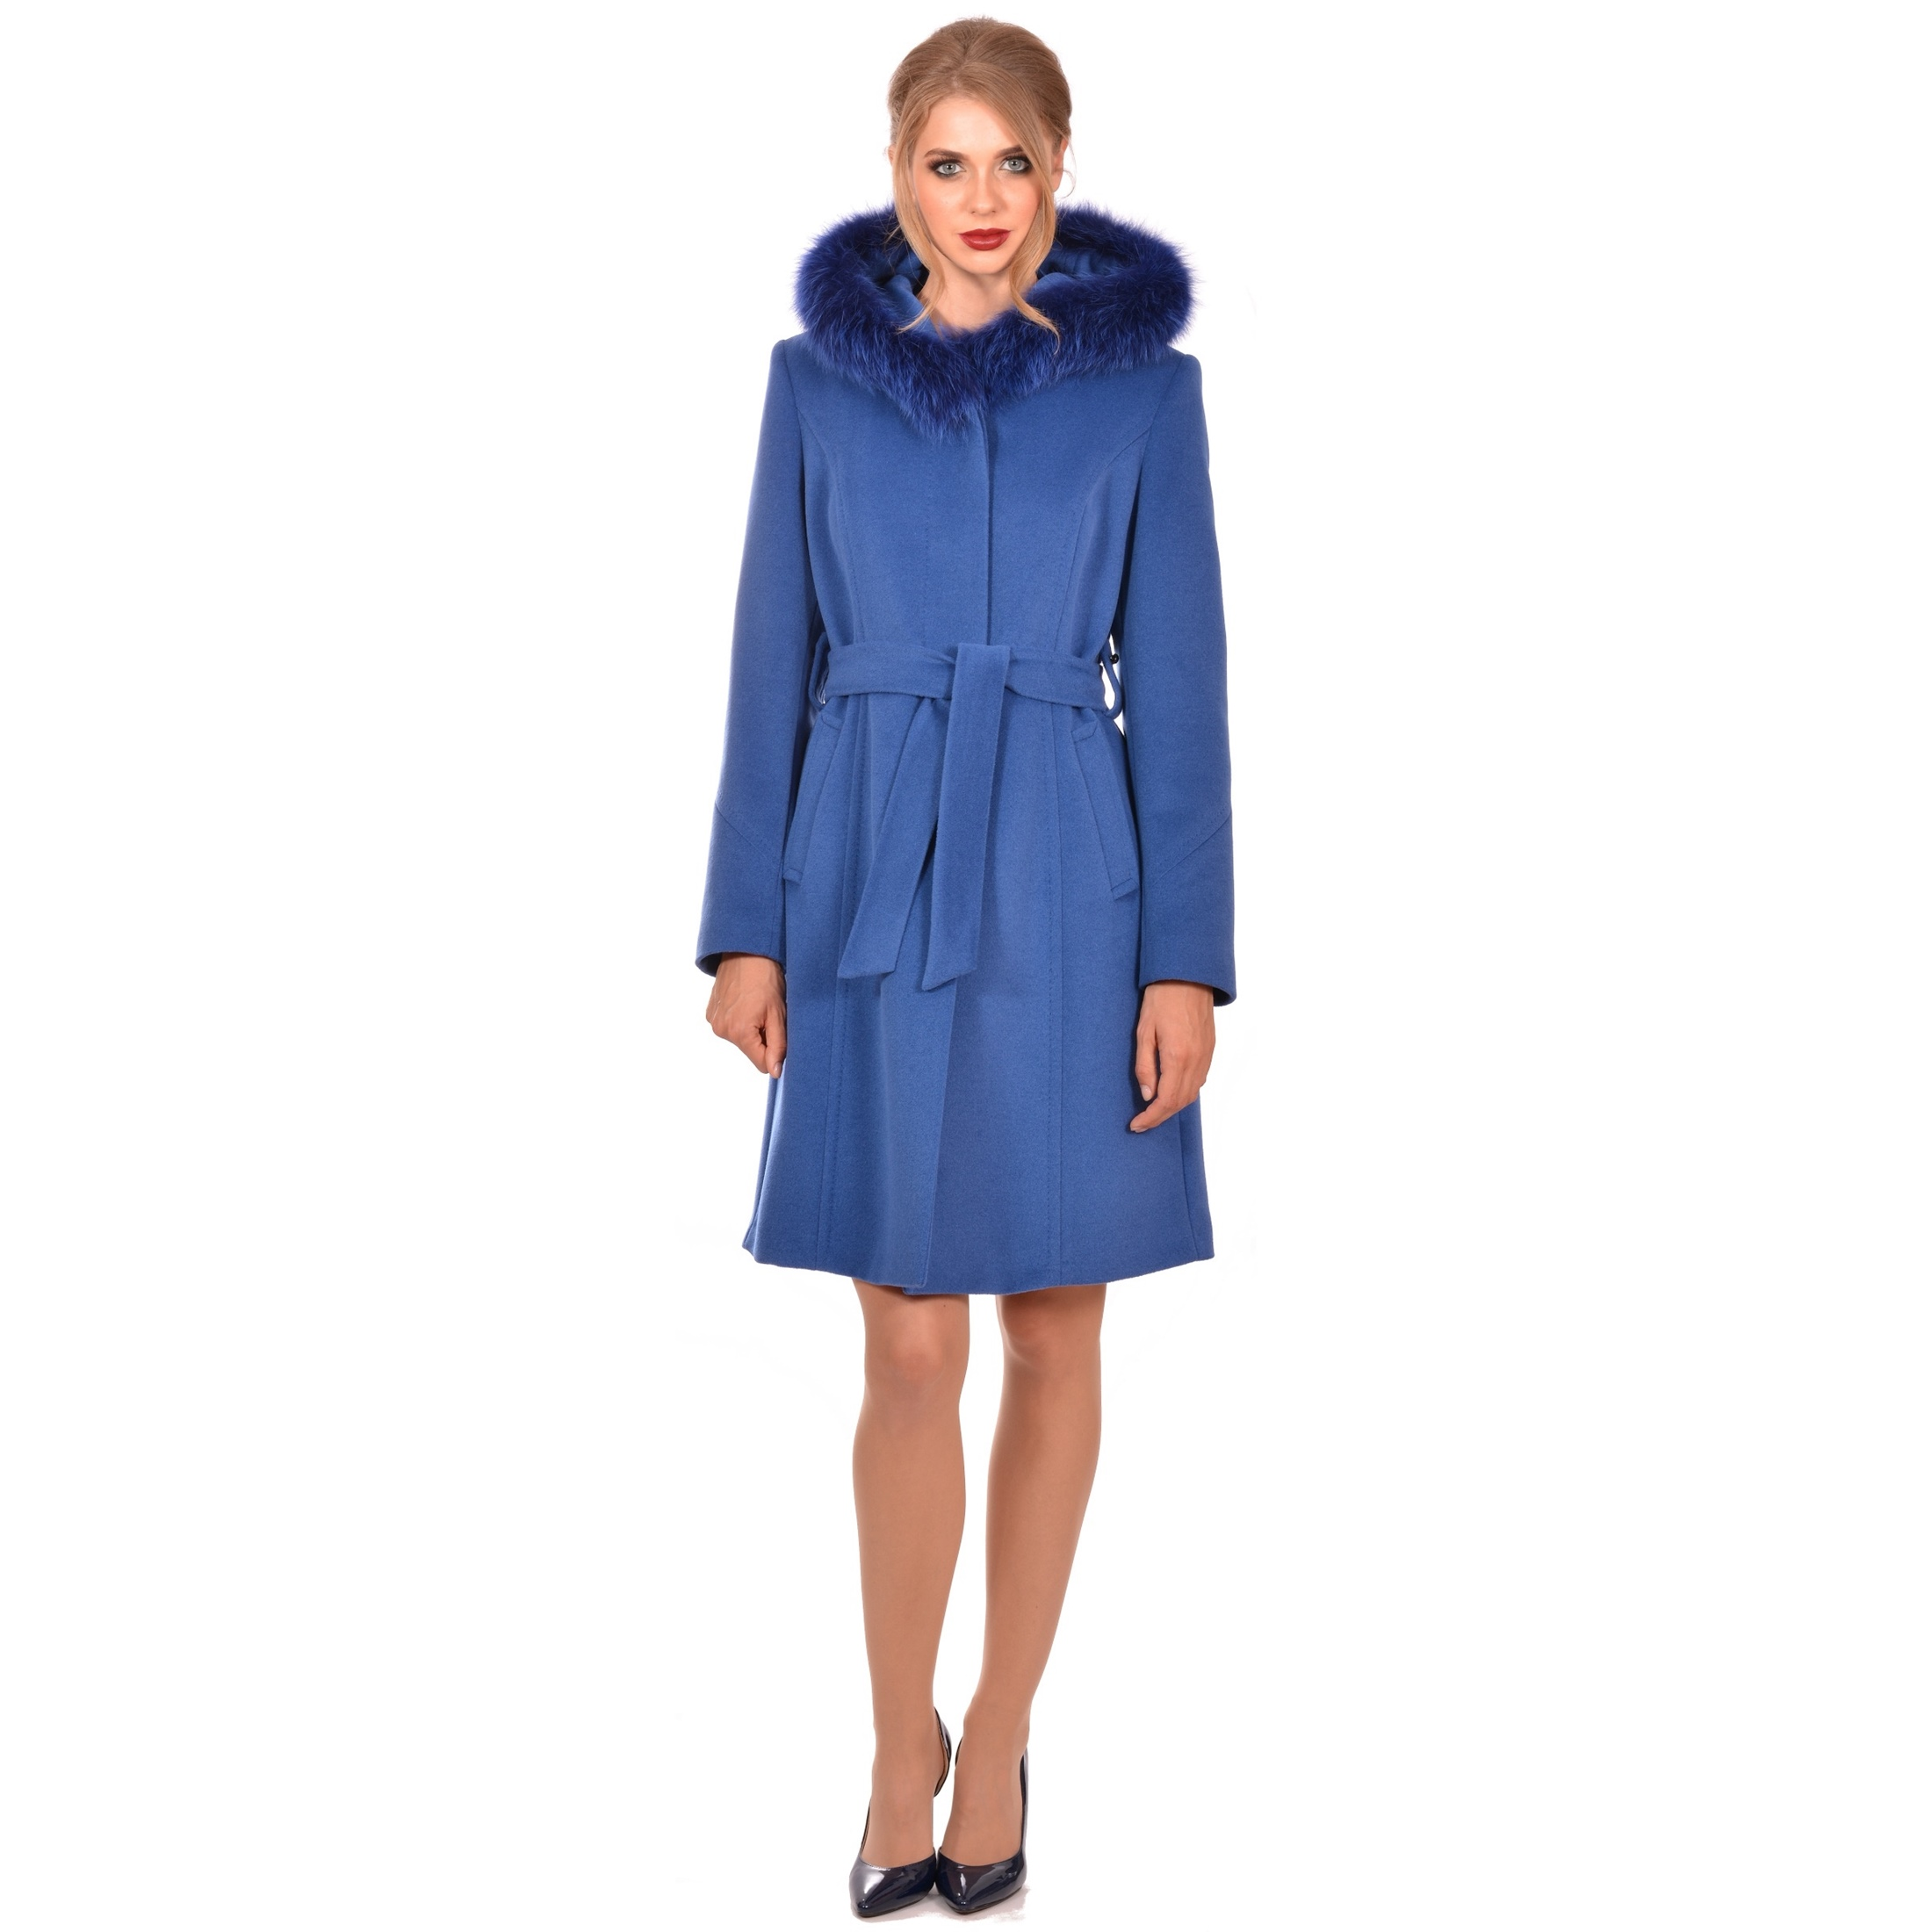 blue wool coat with fur and hood,plavi kaput s kapuljačom lady m